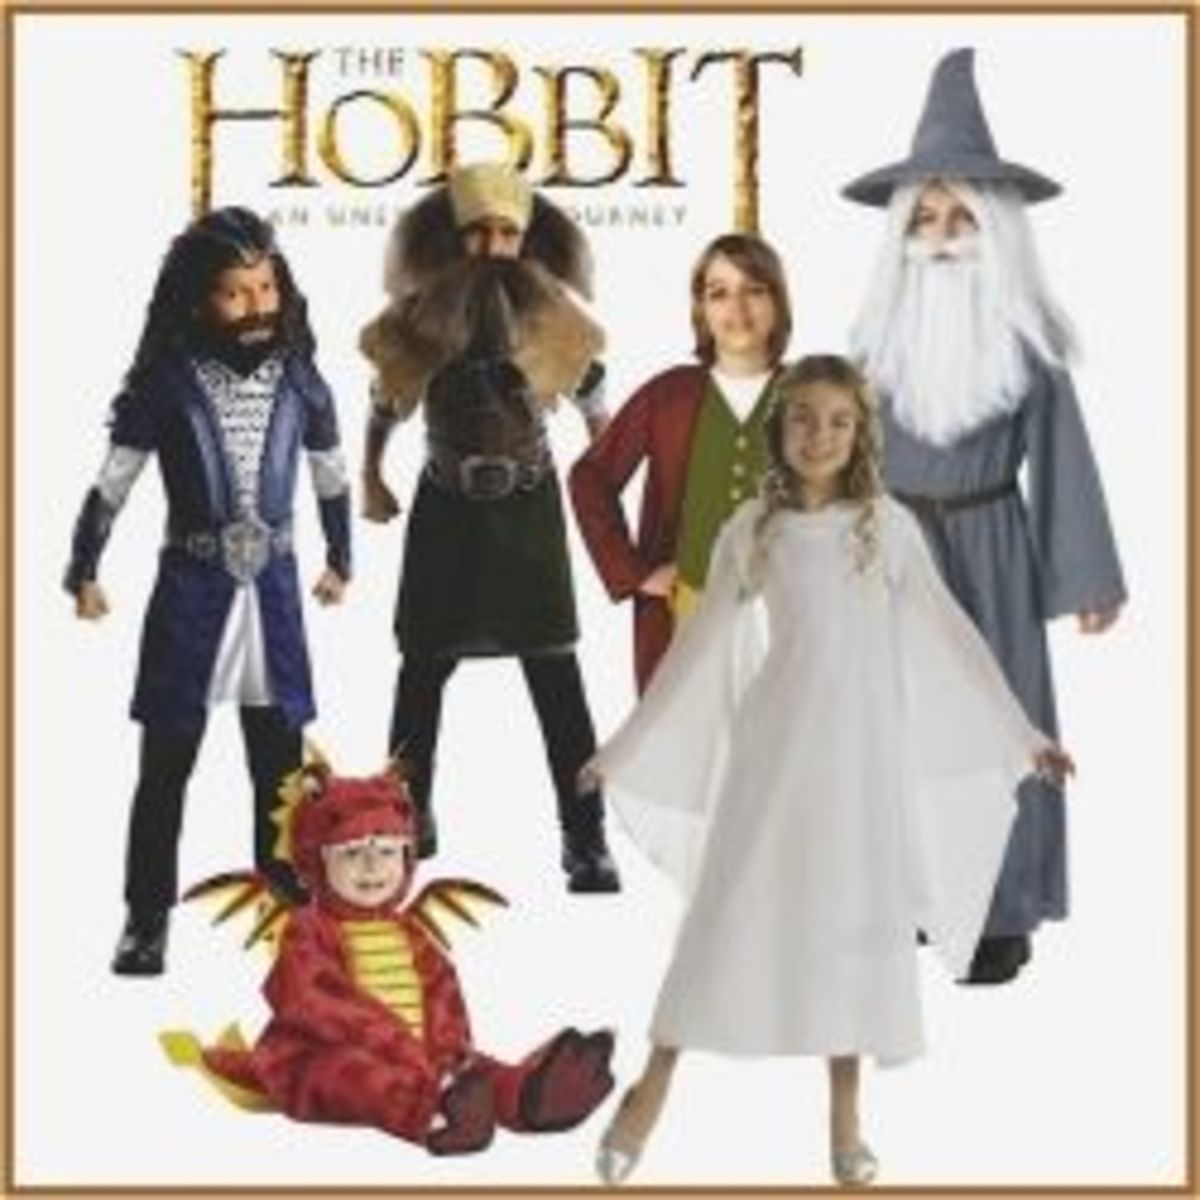 Some of the Hobbit Character Costumes  you'll find on this page.  (Montage created by us. Do not copy)